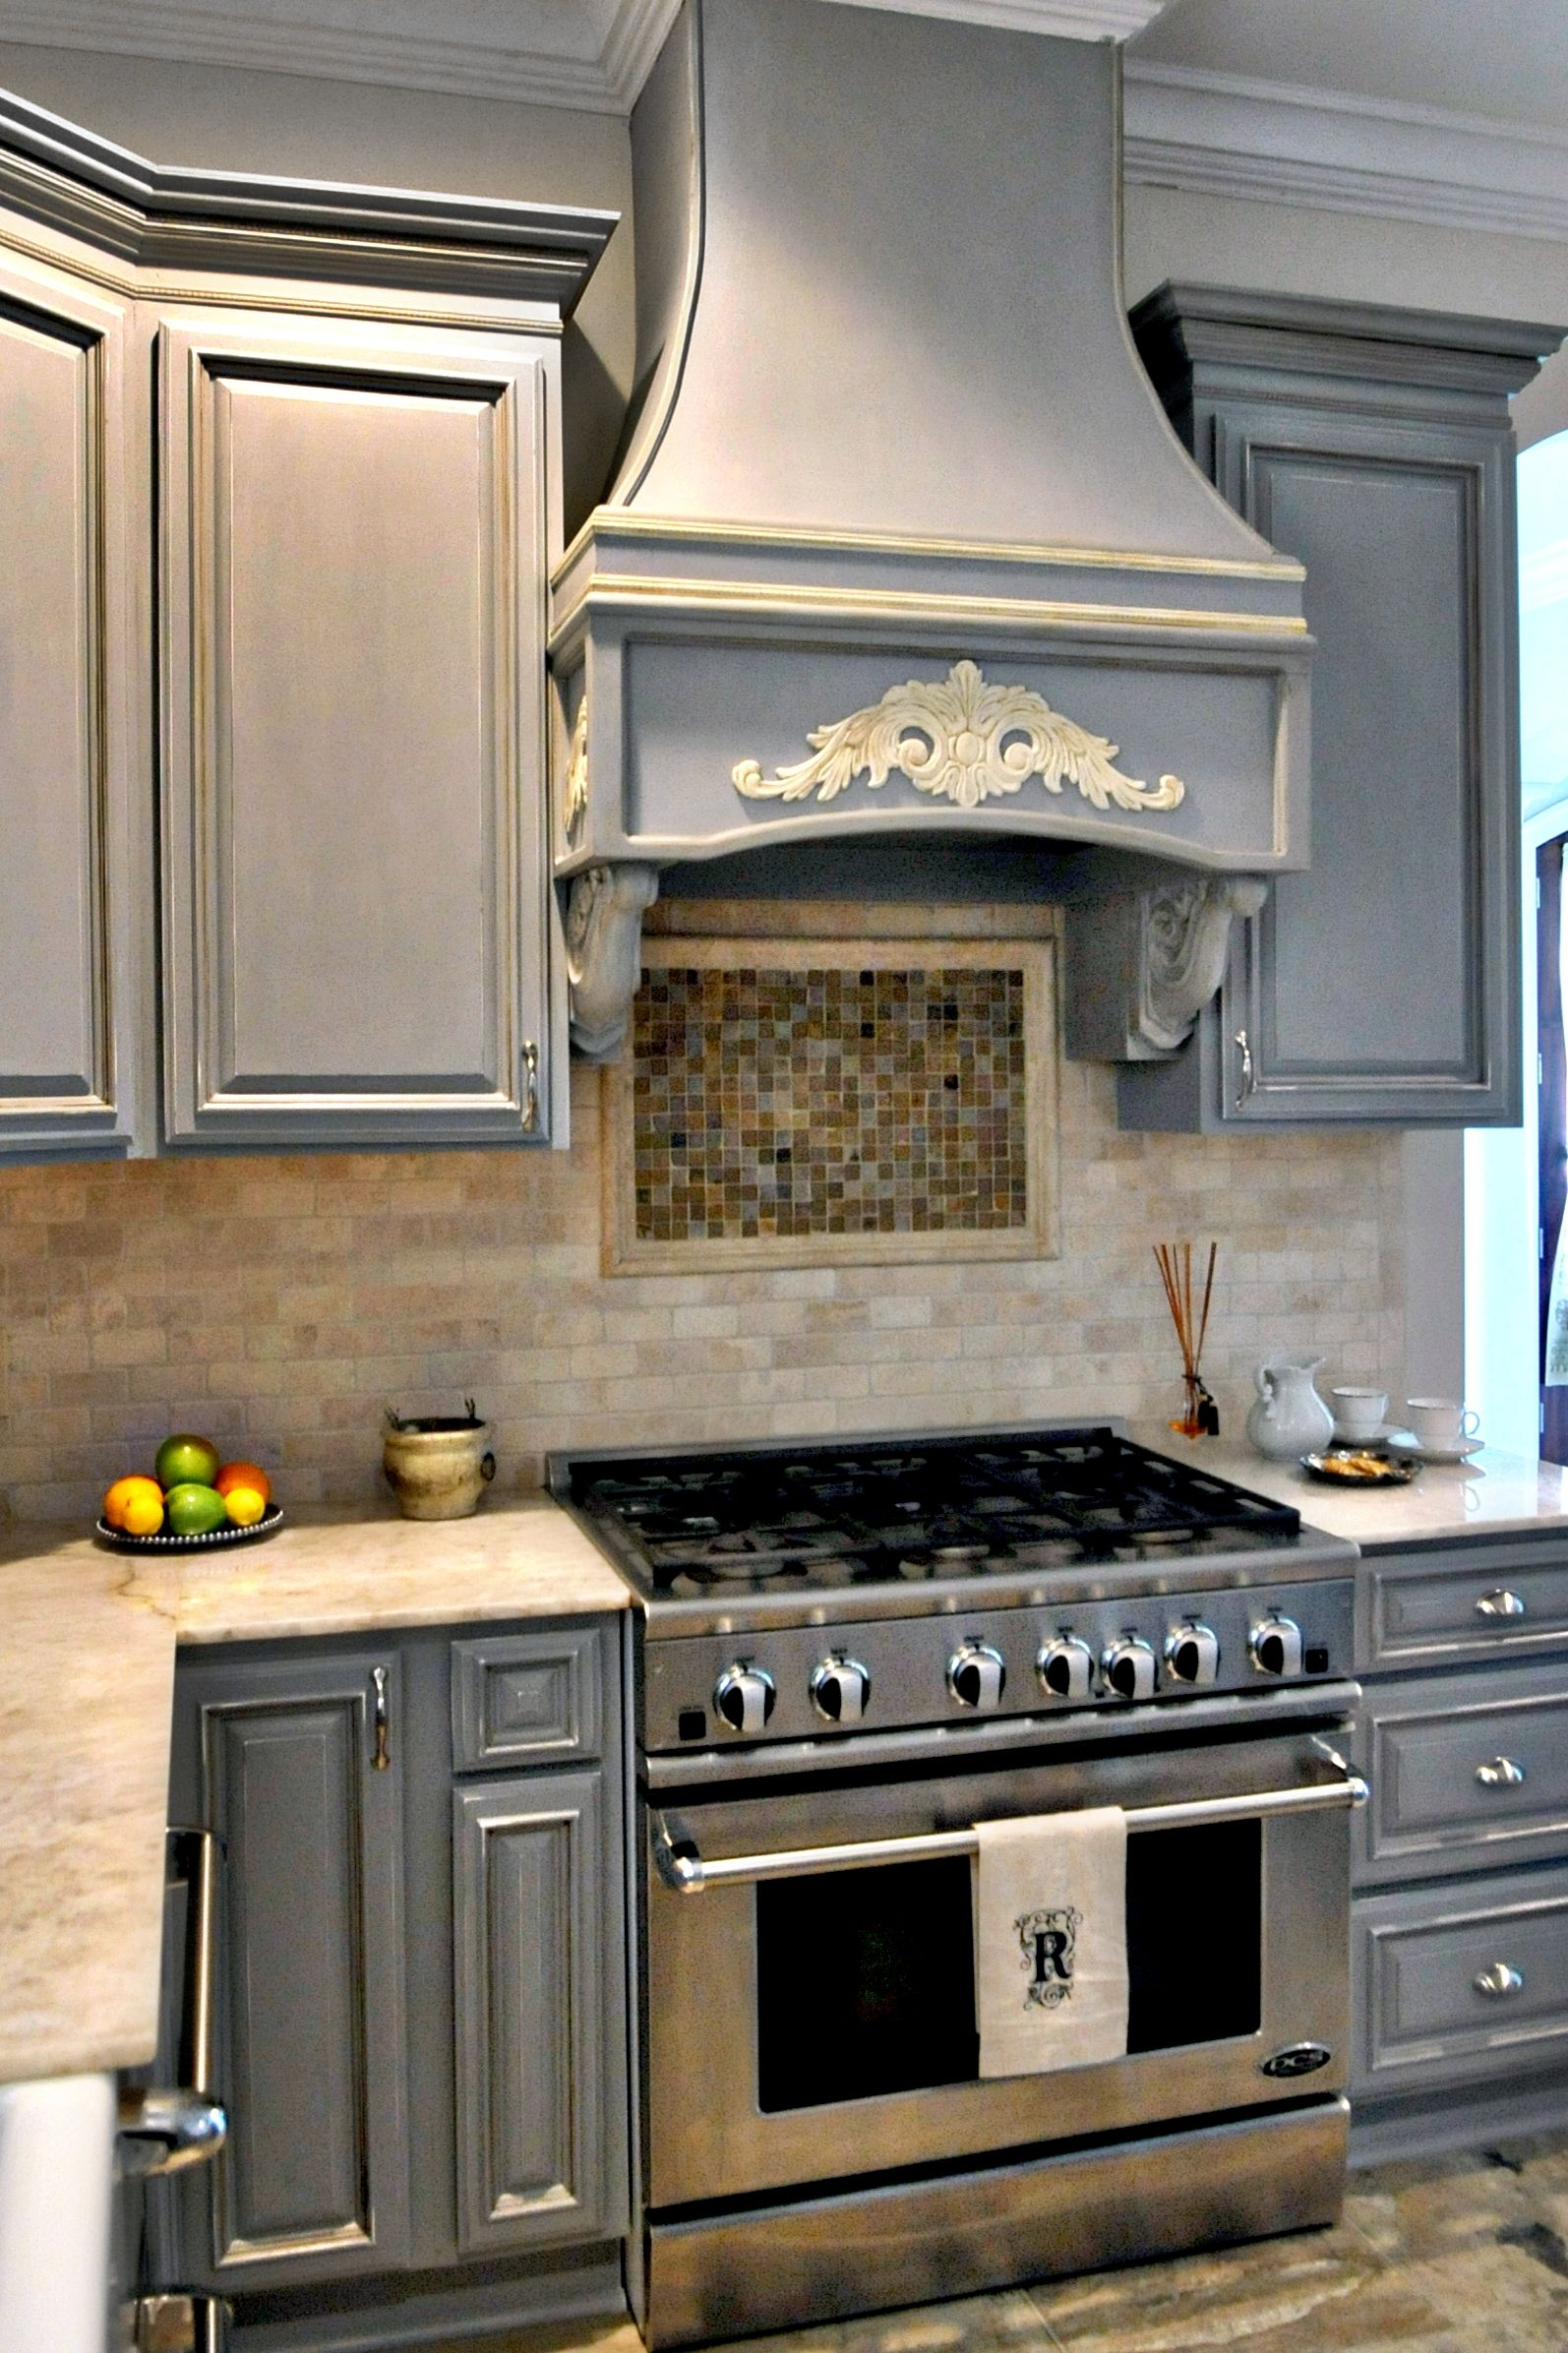 Annie Sloan Chalk Paint In Paris Grey Kitchen Cabinets Painted Grey Chalk Paint Kitchen Cabinets Diy Kitchen Cabinets Build